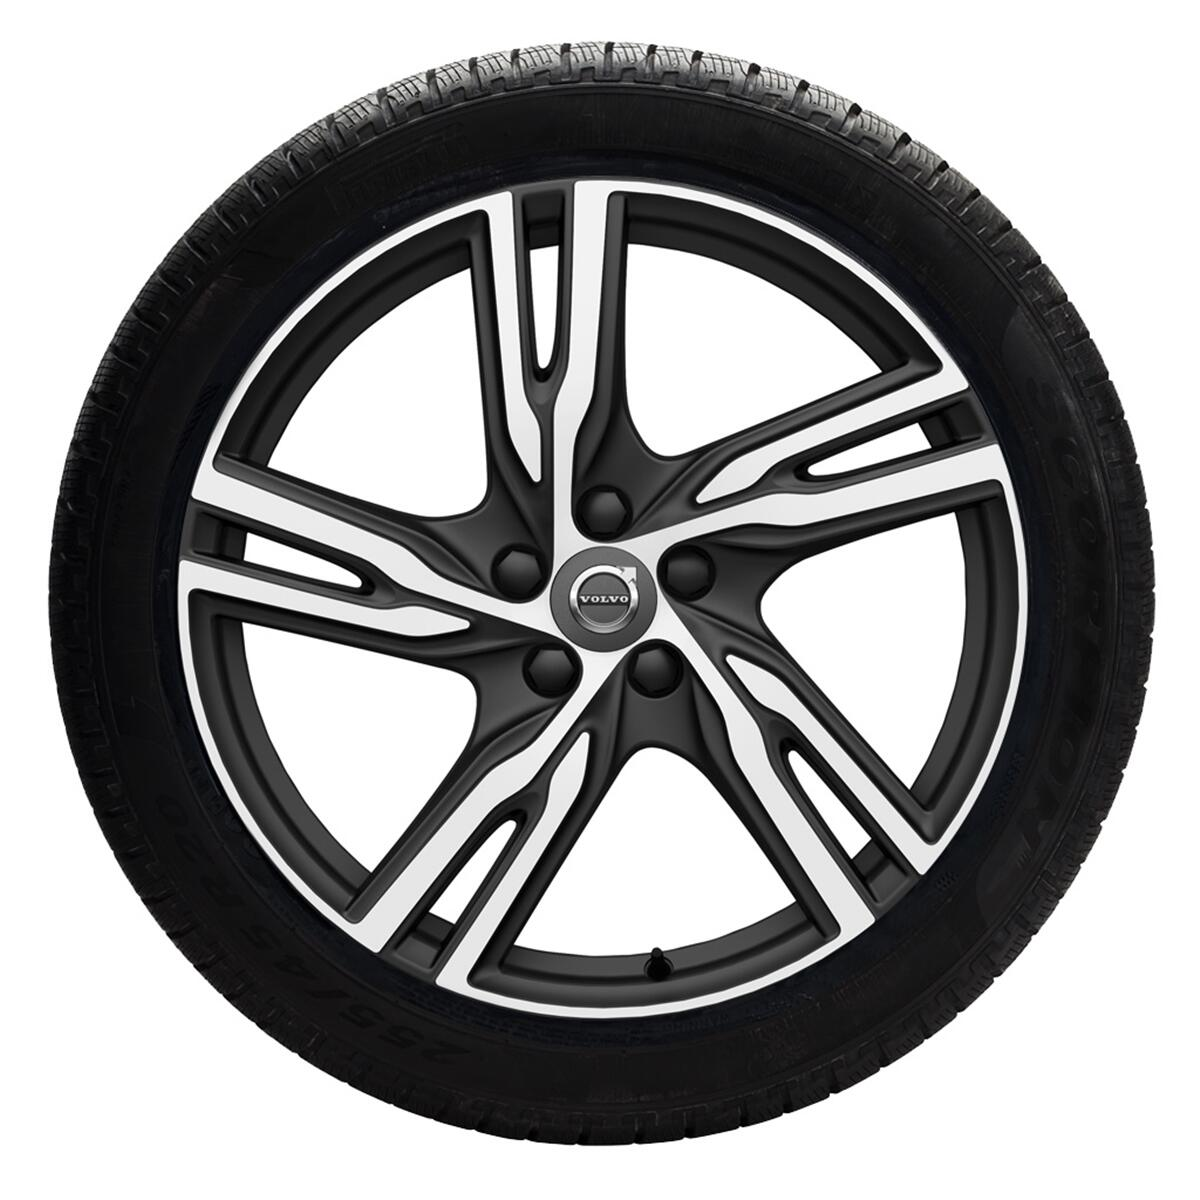 Komplet zimskih točaka 235/55 R18; 5-Double Spoke Matt Black Diamond, guma Nokian